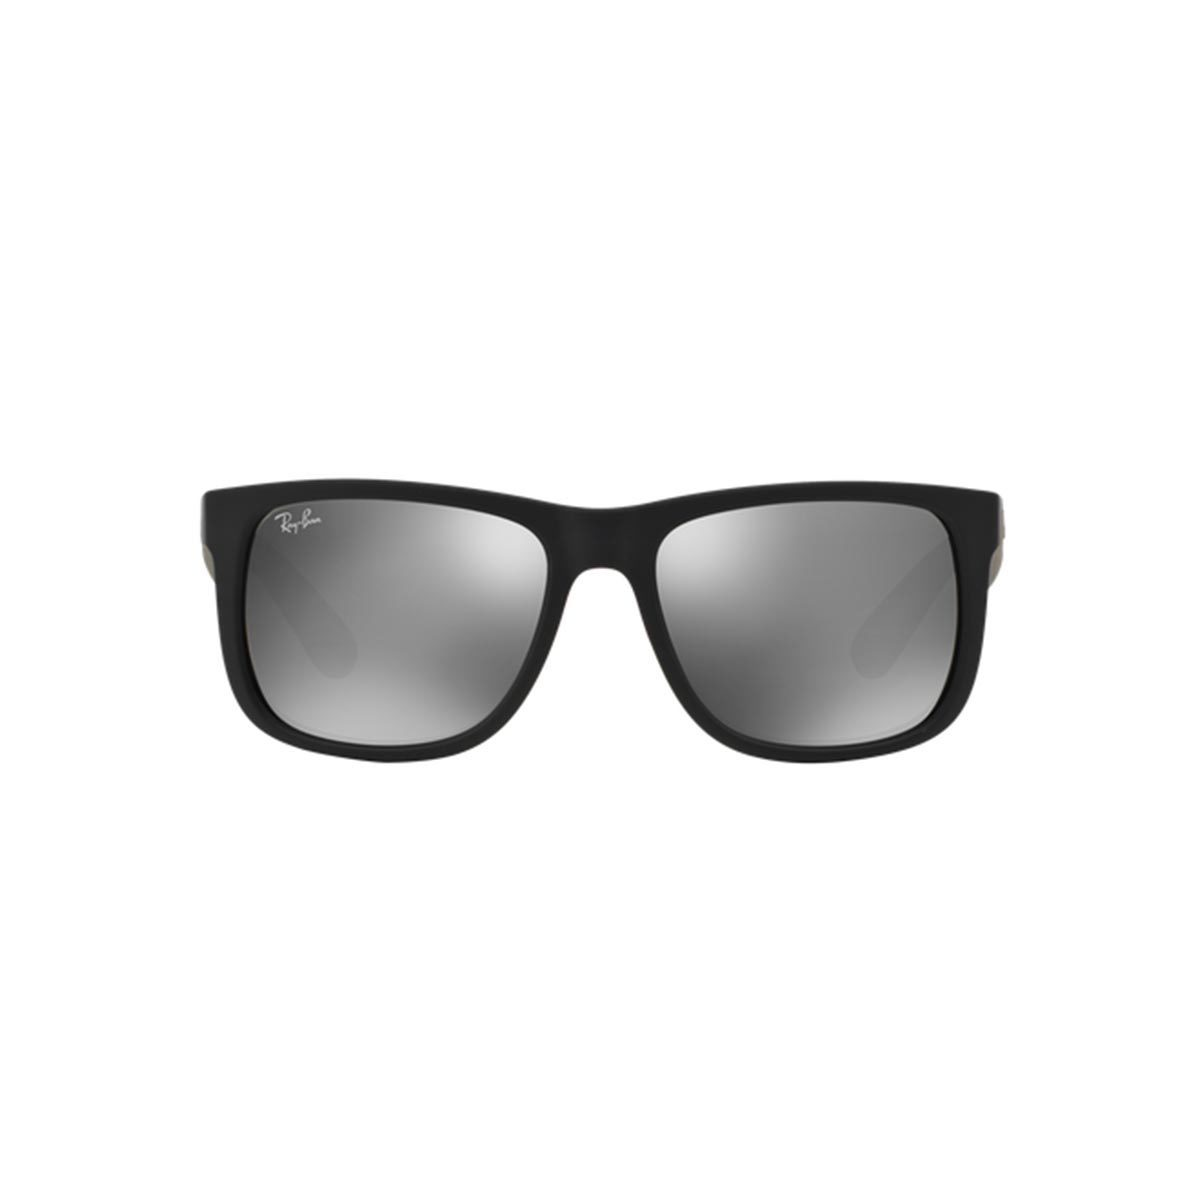 0c42c9666c Shop Ray-Ban Justin Color Mix RB 4165 Unisex Black Frame Grey Mirror Lens  Sunglasses - Free Shipping Today - Overstock - 10809681